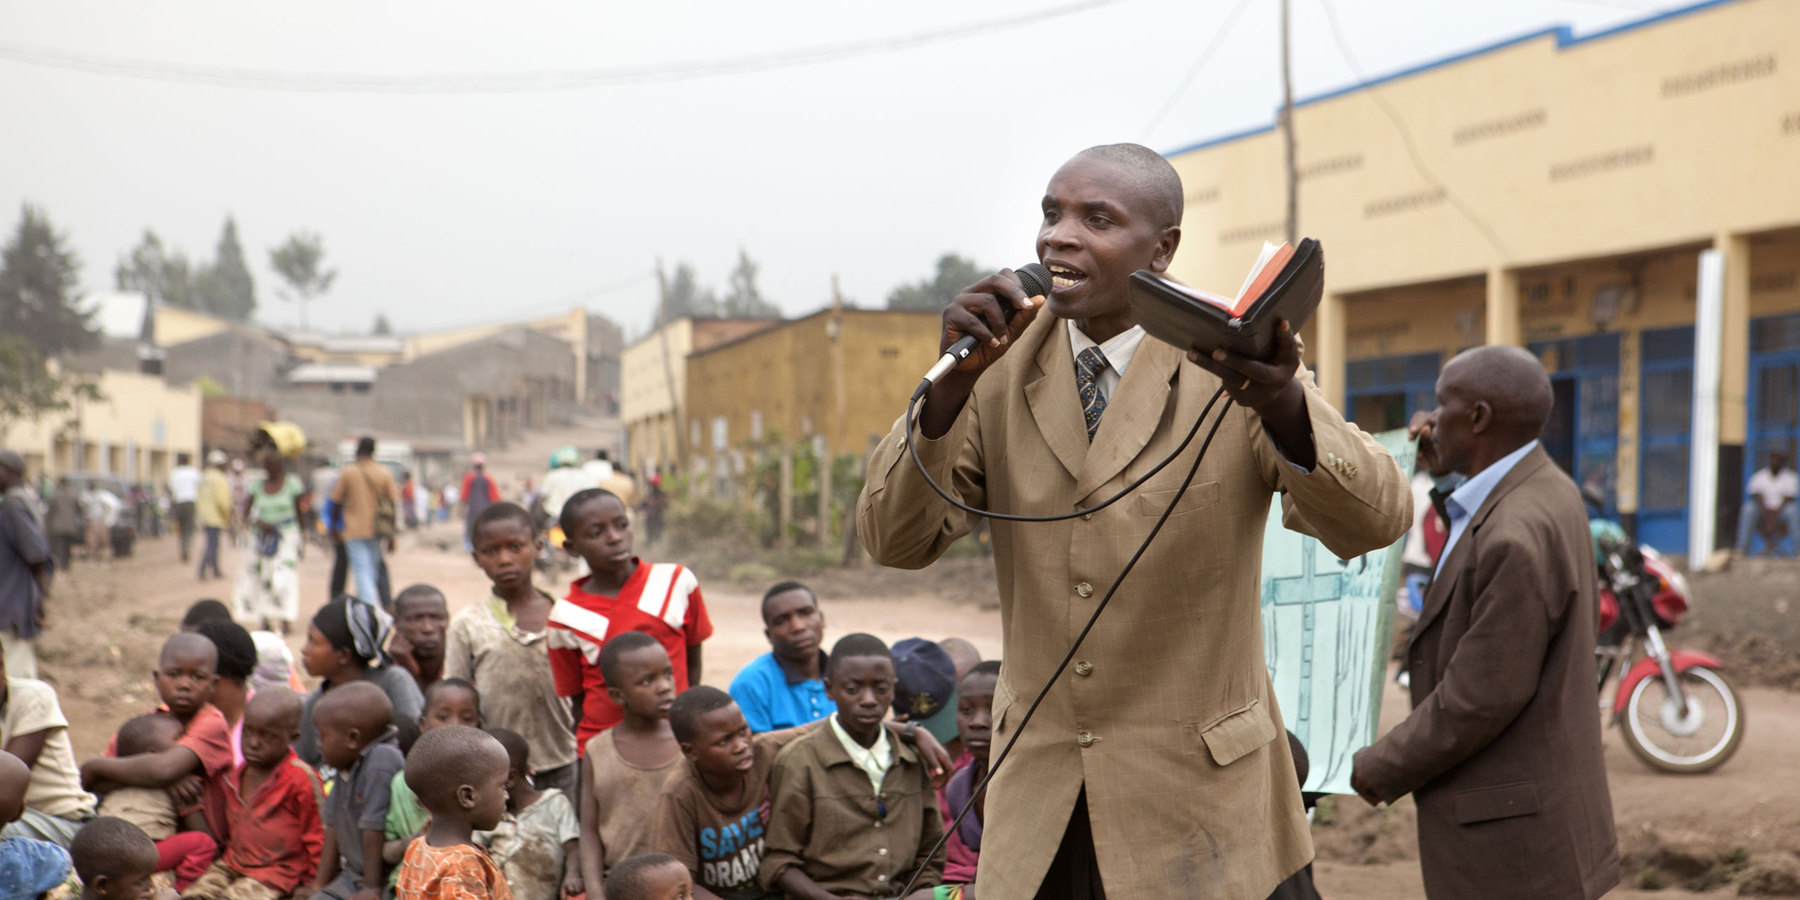 A Black man holding a Bible and a microphone, preaching to a group of children